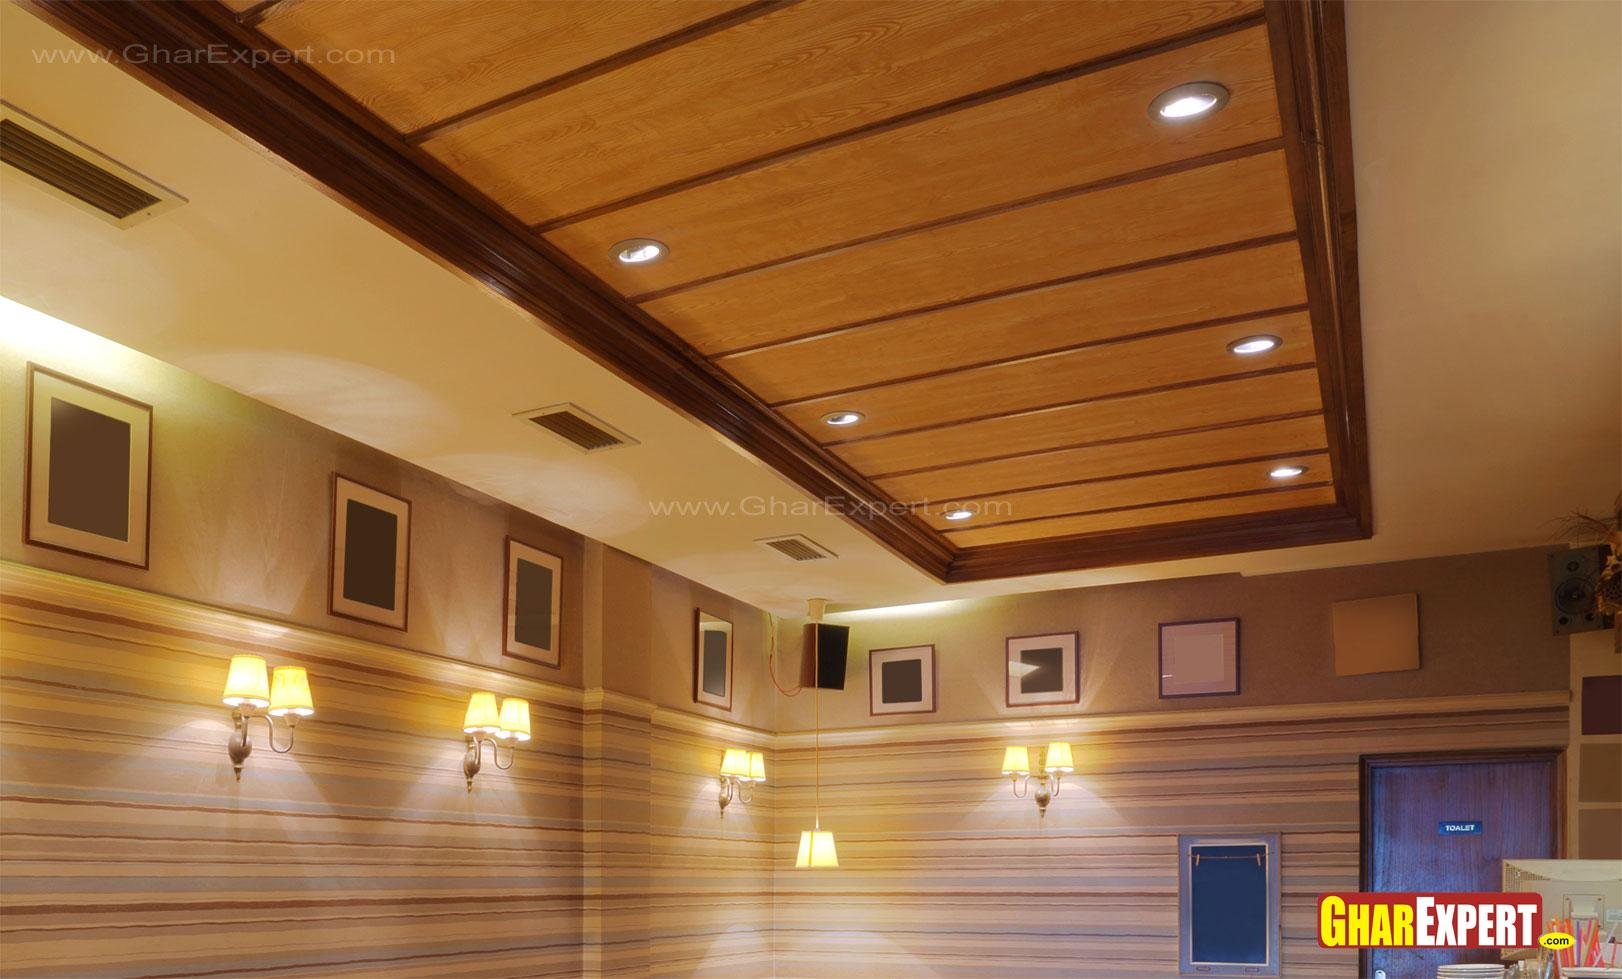 Wooden plank ceiling with lighting for restaurant GharExpert : 8162012112246 from www.gharexpert.com size 1622 x 979 jpeg 164kB